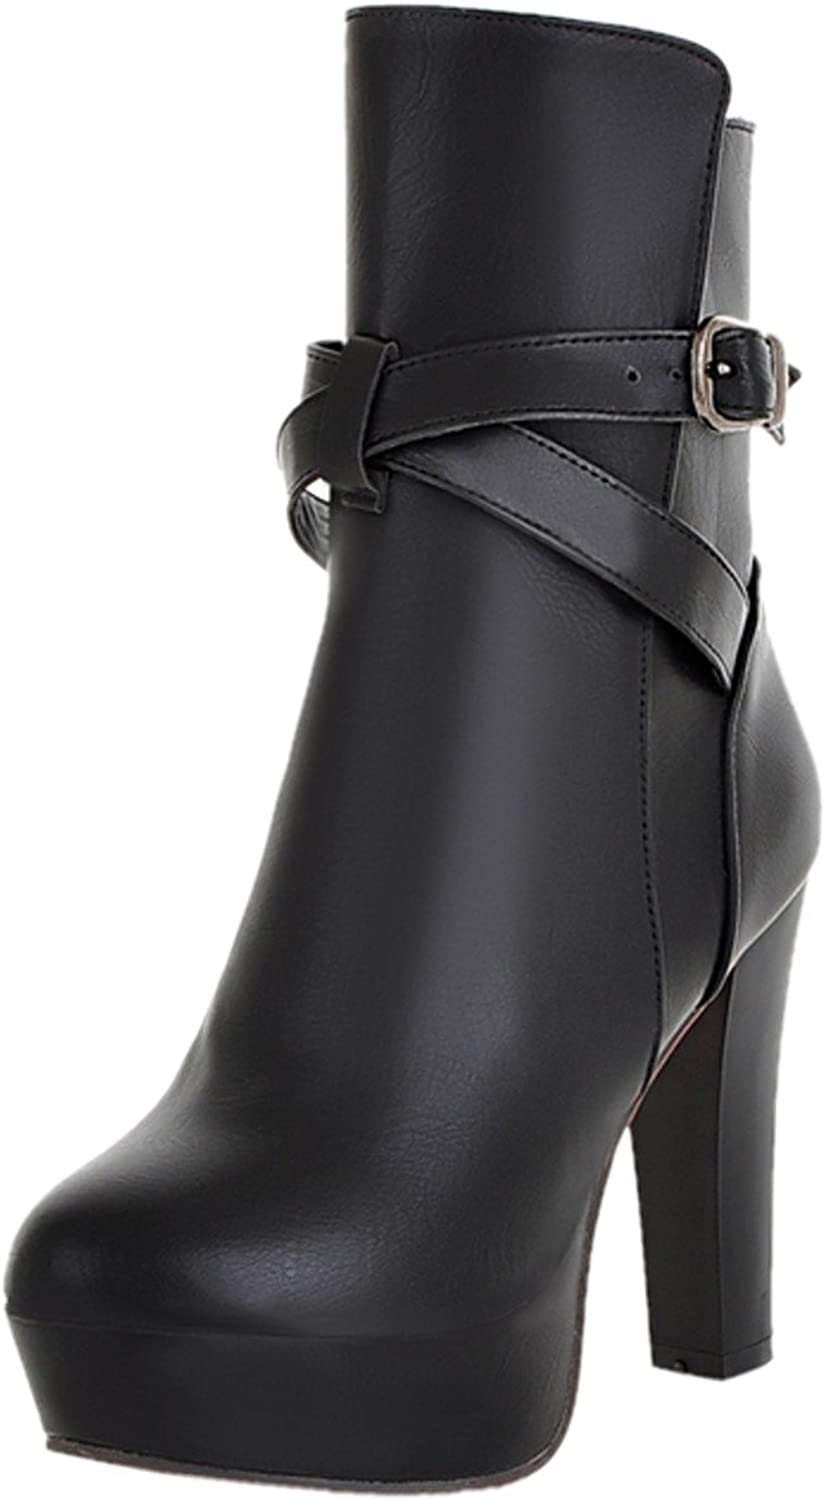 Rongzhi Womens Ankle Boots Pump High Heels Buckle Strap Zip Party Dress Formal Platform Booties Round Toe